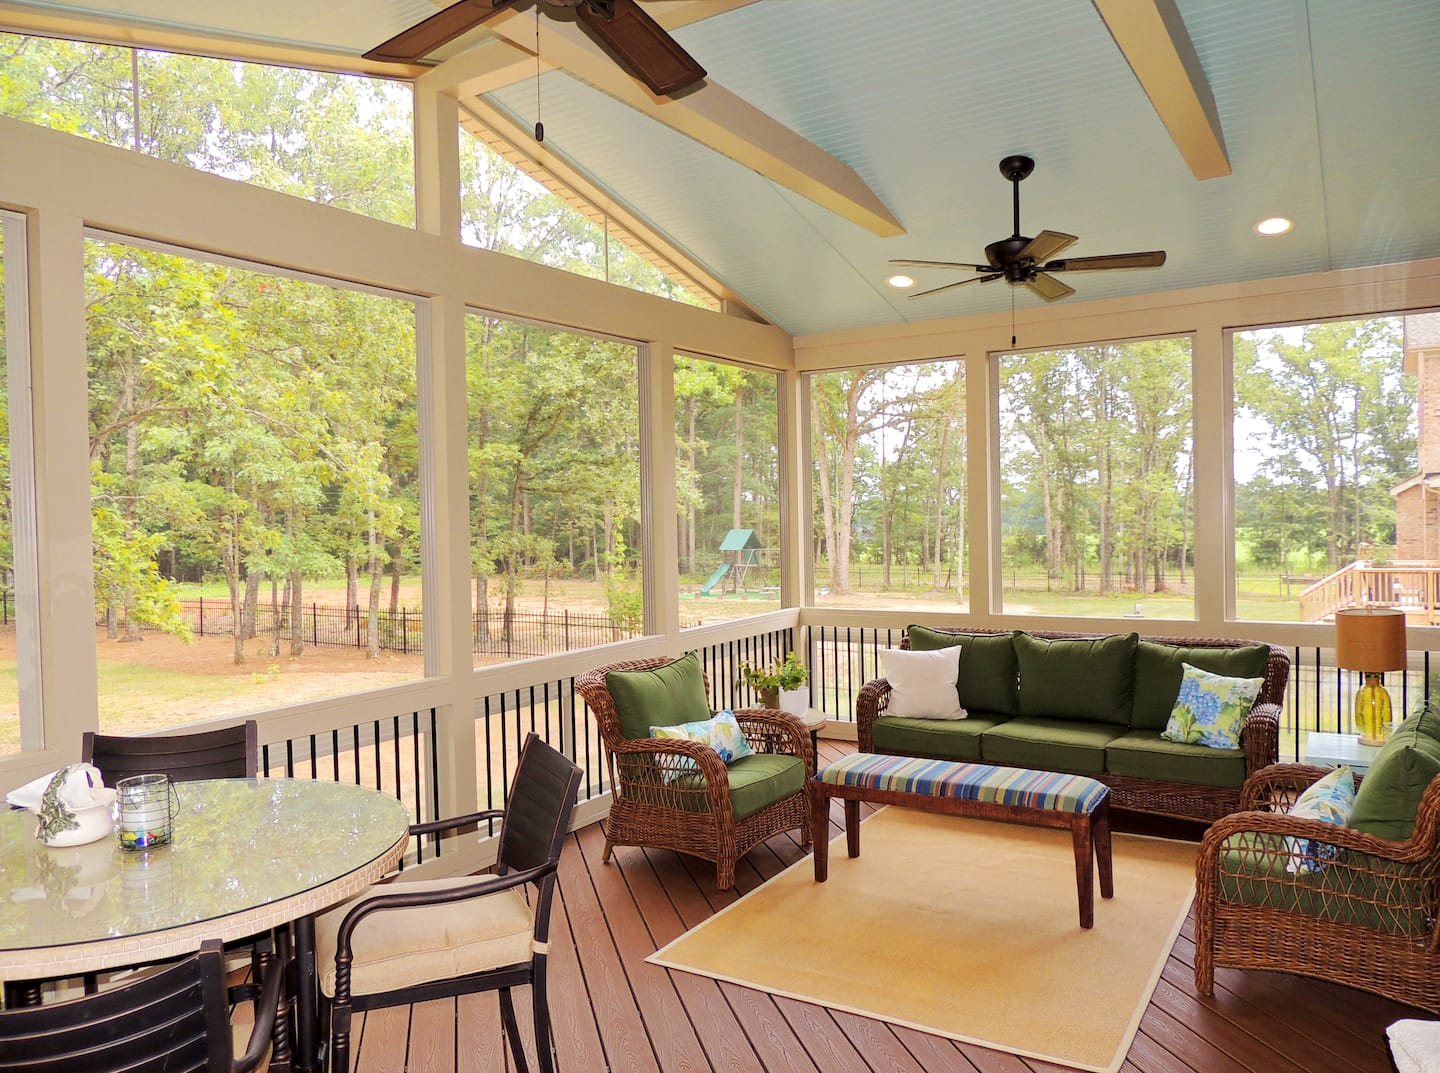 Choosing Between a Sunroom or Enclosed Porch | Angie's List on screen rooms for mobile homes, awnings for mobile homes, types of skirting for homes, garages for mobile homes, lake view mobile homes, kinro windows for mobile homes, vinyl windows for mobile homes, roofing for mobile homes, siding for mobile homes, enclosed sunrooms for mobile homes, patios for mobile homes, bay windows for mobile homes, enclosed additions for mobile homes, enclosed decks on mobile homes, french doors for mobile homes, trailers for mobile homes, decks for mobile homes, wood stoves for mobile homes, covered porches for manufactured homes, country porches on mobile homes,